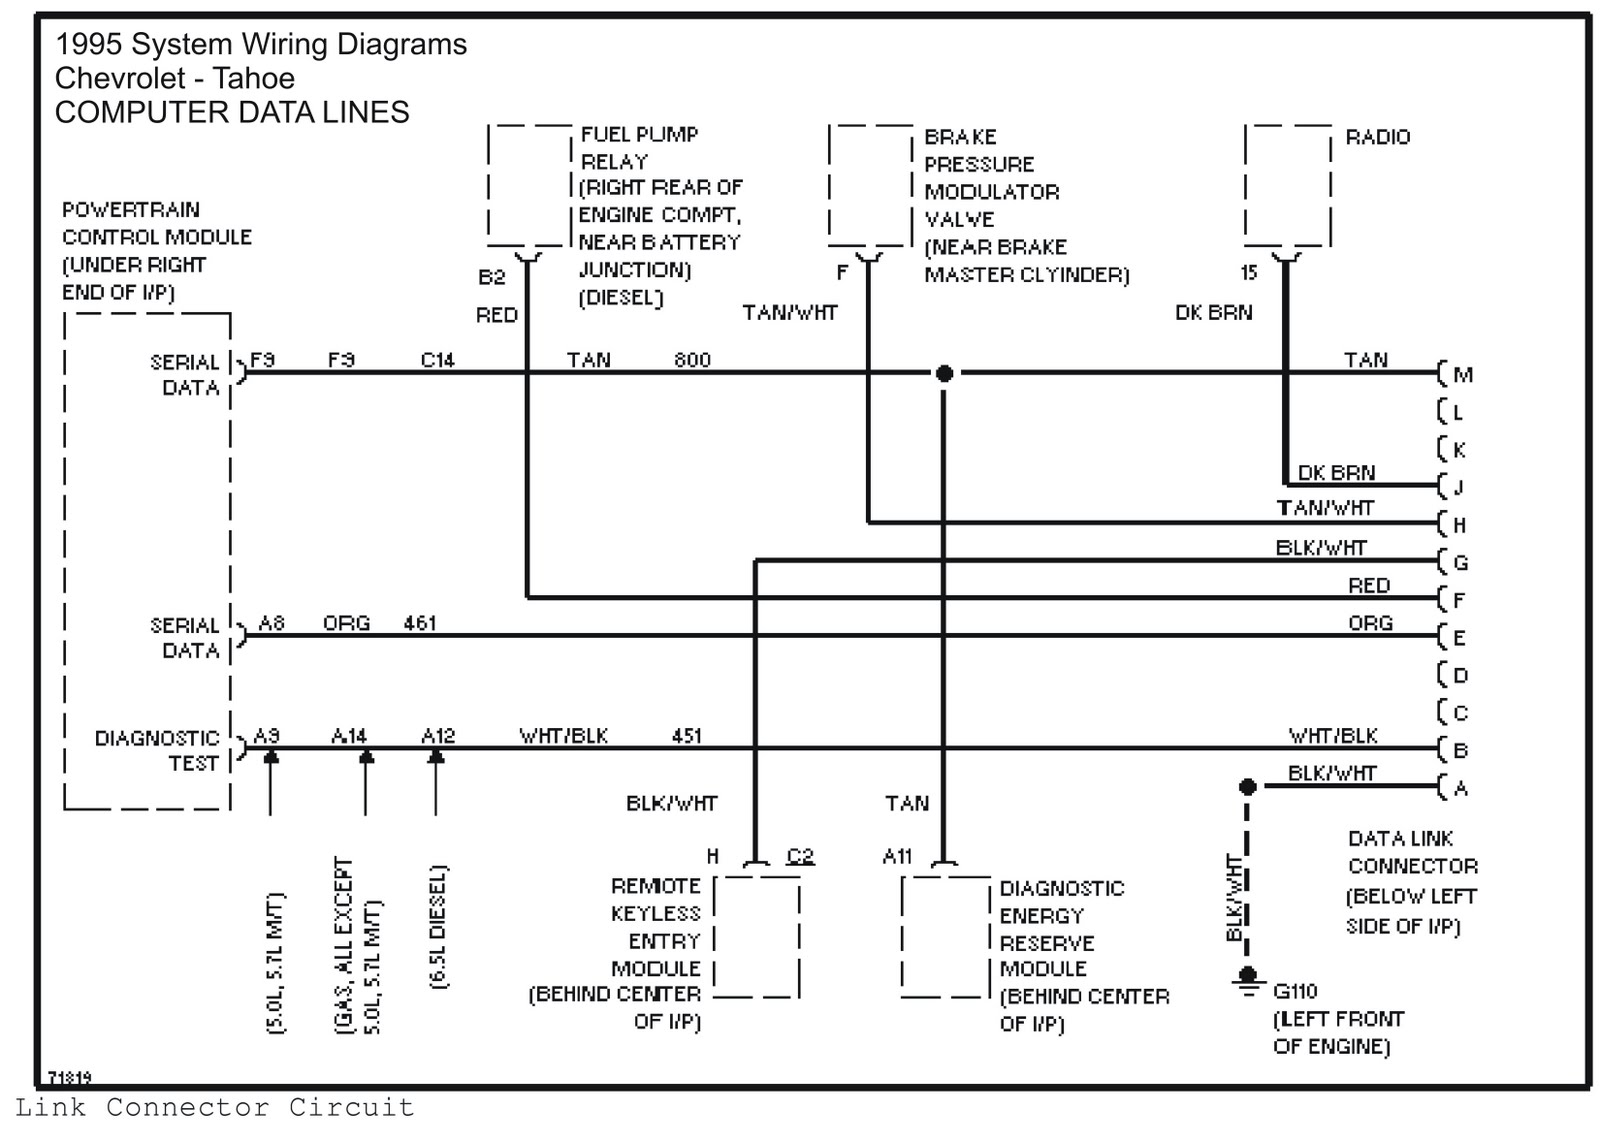 small resolution of 96 tahoe 02 wiring diagram wiring diagram 96 tahoe engine diagram